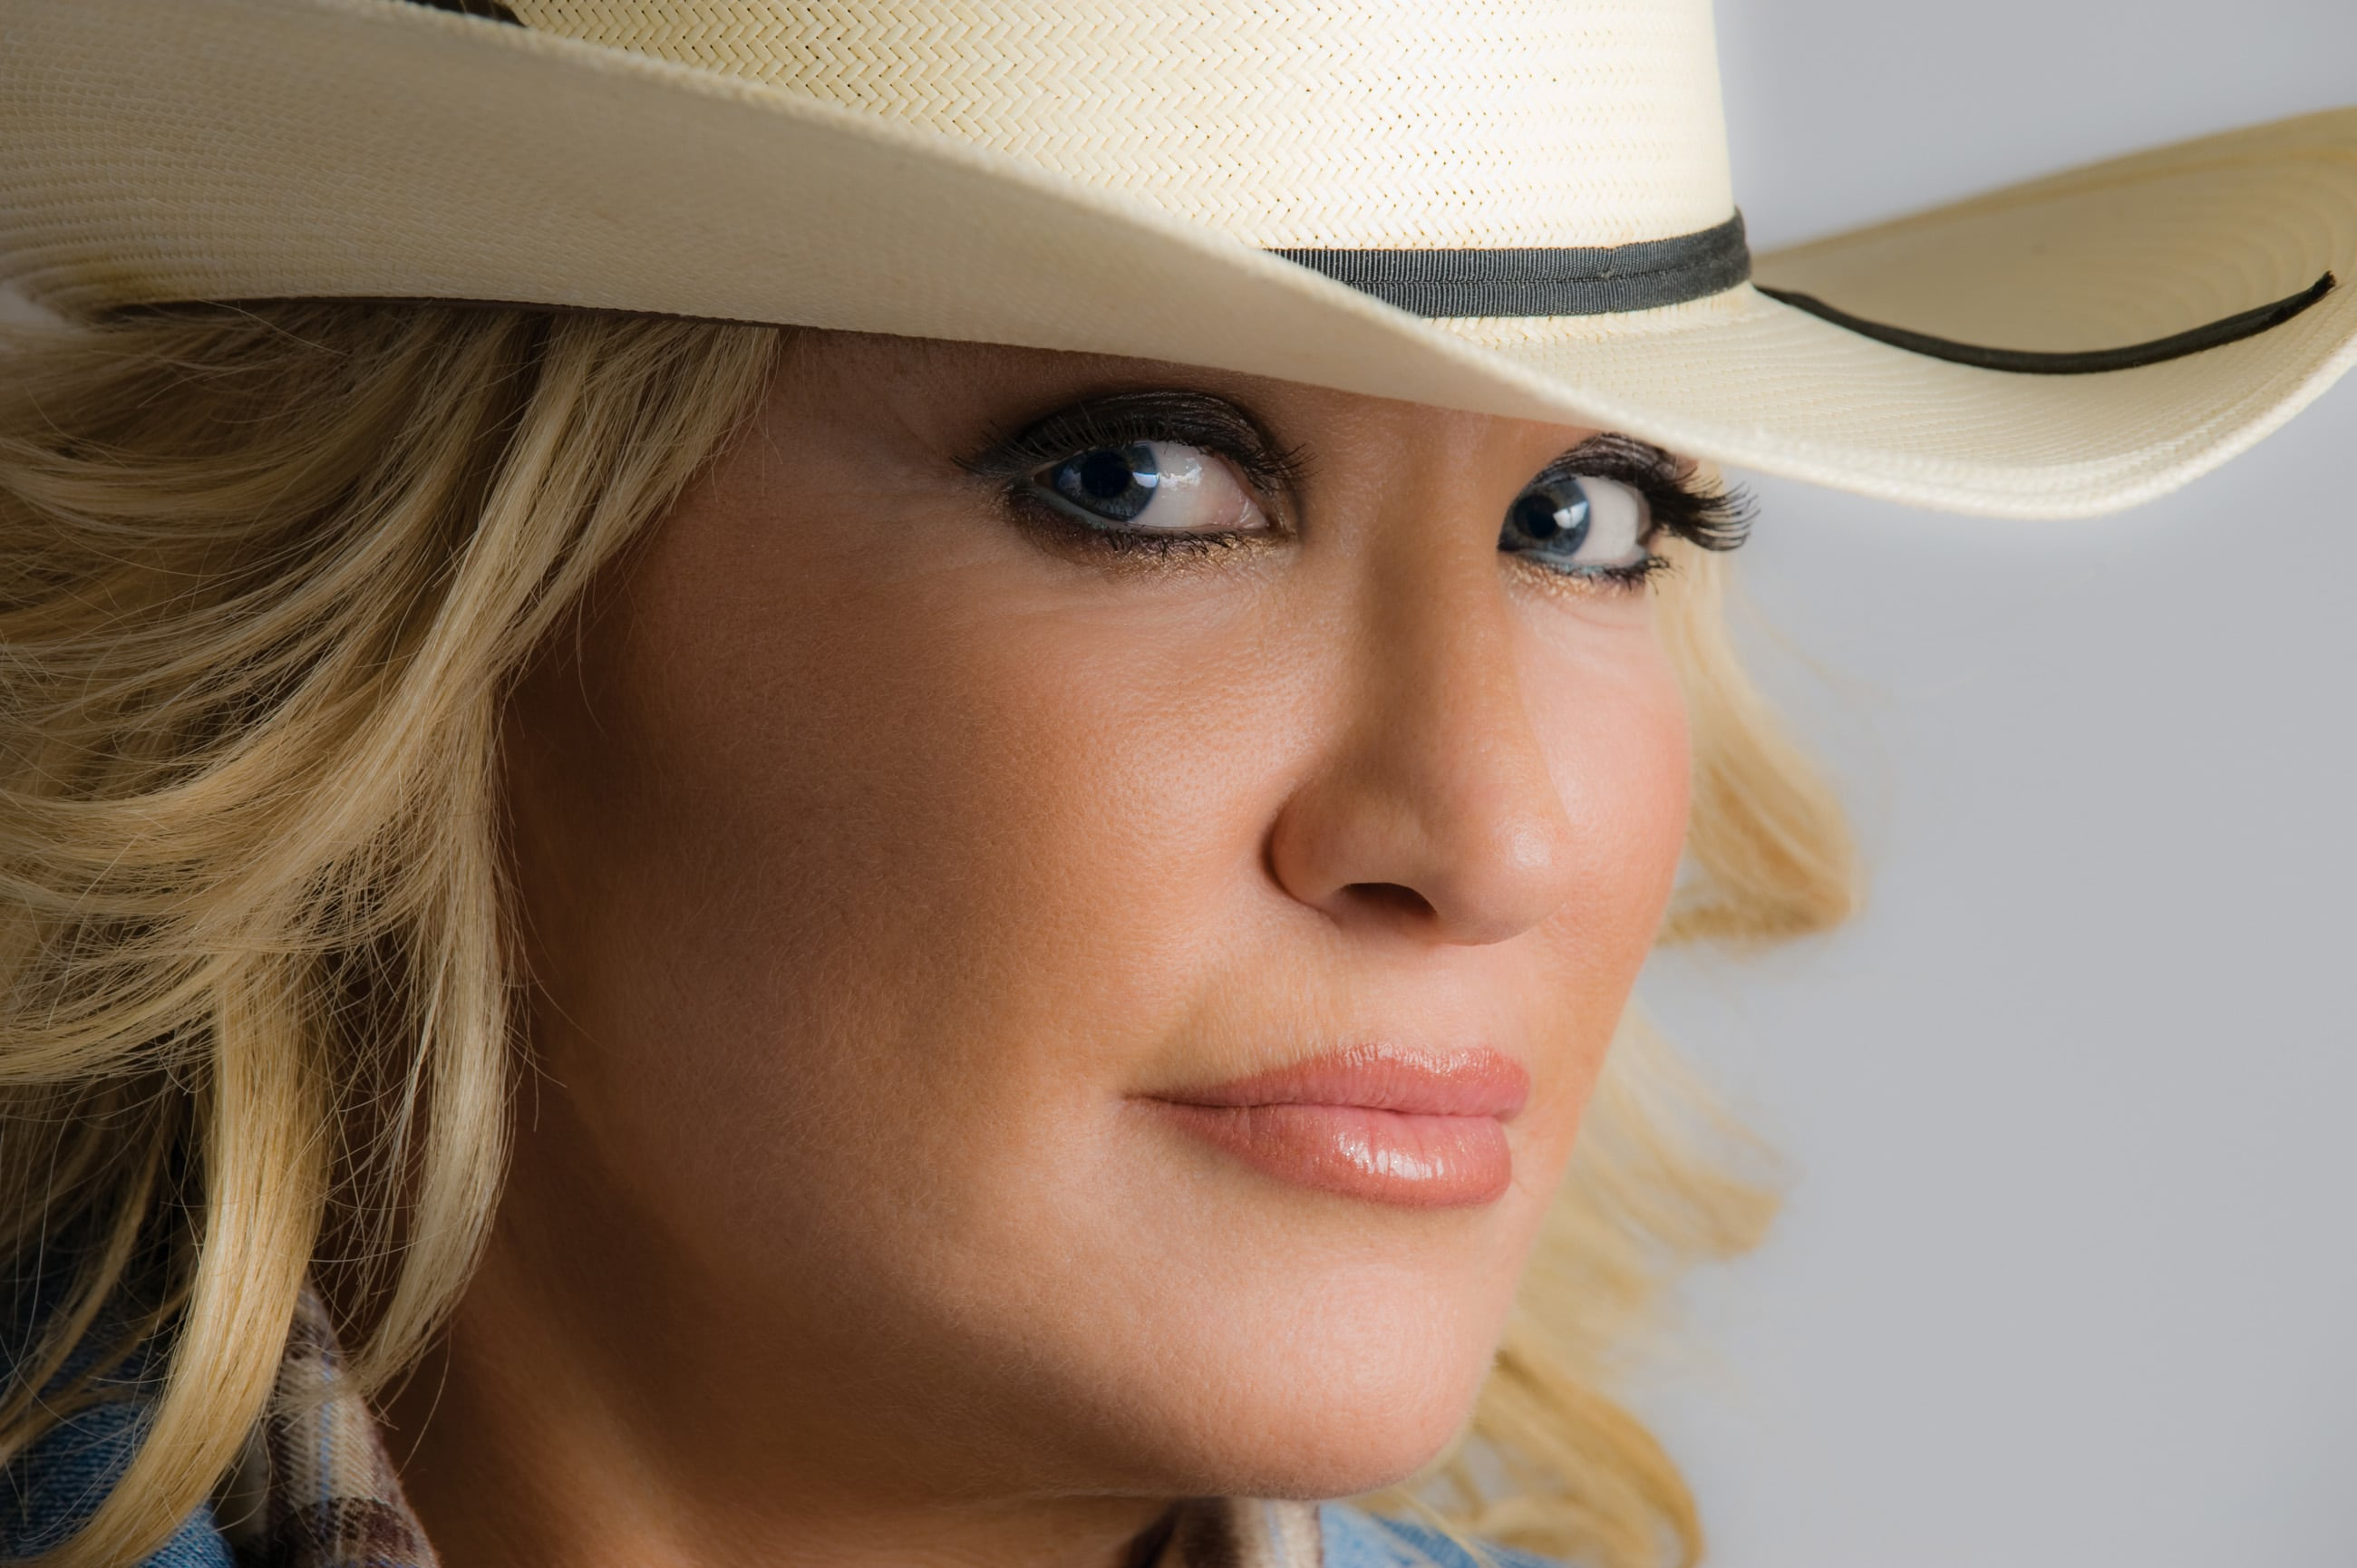 Now here's some great news for fans … the one and only Tanya ...: nashvillegab.com/2015/03/tanya-tucker-to-release-new-music-head-out...